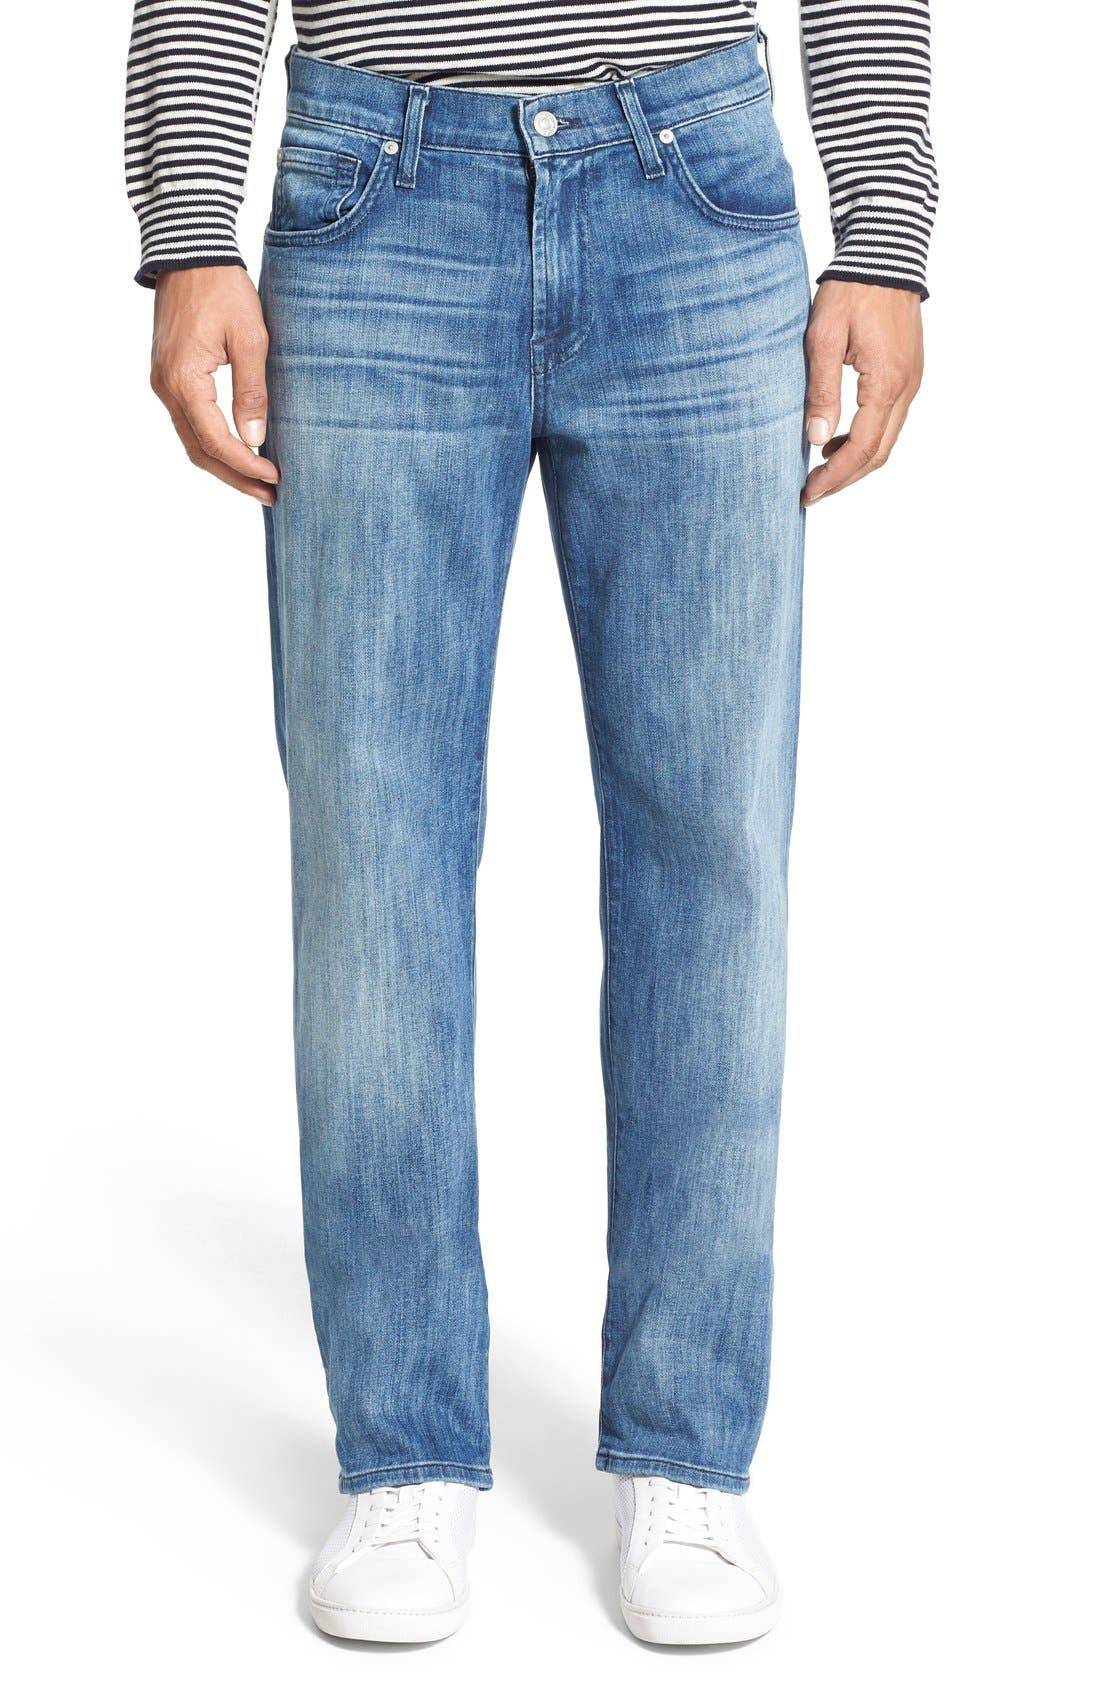 Luxe Performance - Austyn Relaxed Straight Leg Jeans,                         Main,                         color, Nakkitta Blue